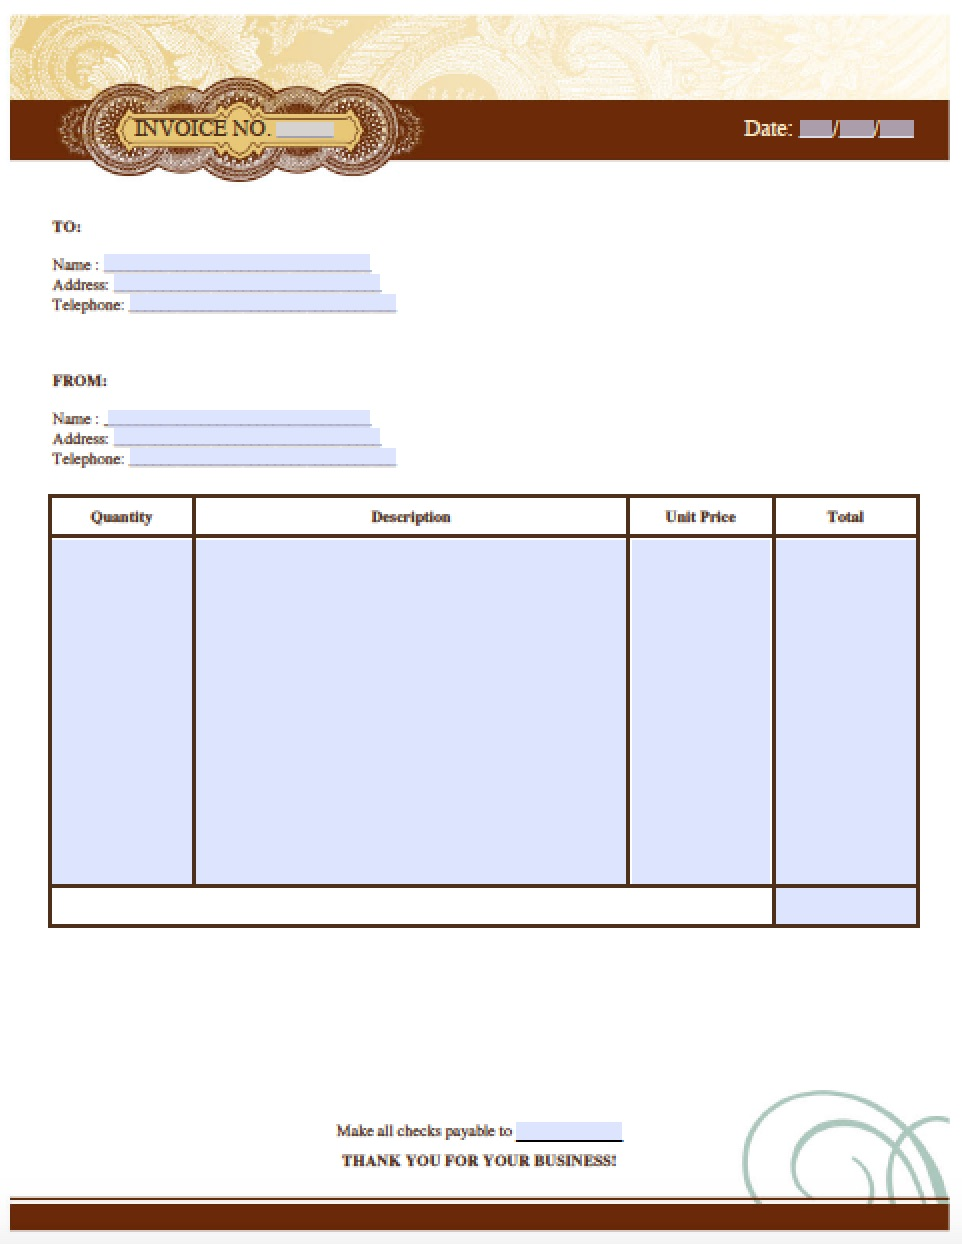 Free Artist Invoice Template Excel PDF Word Doc - Free online invoice template for service business